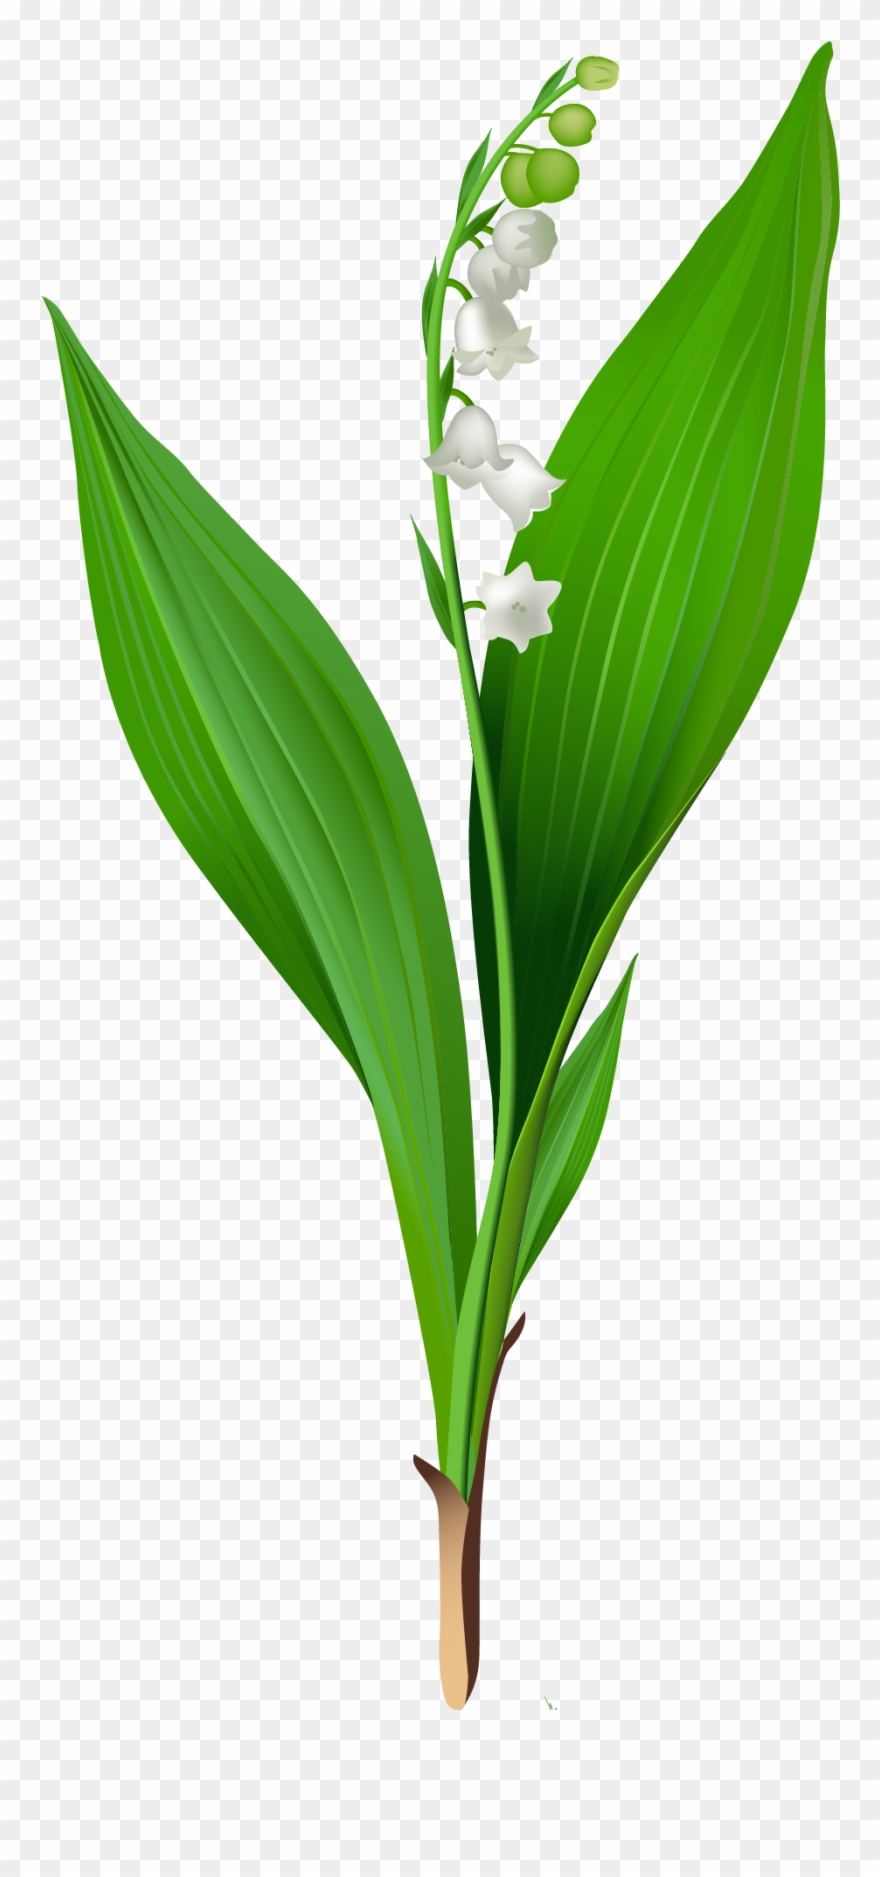 Lilly of the valley clipart svg transparent library Flowers For > Lily Of The Valley Clip Art - Lily Of The Valley ... svg transparent library